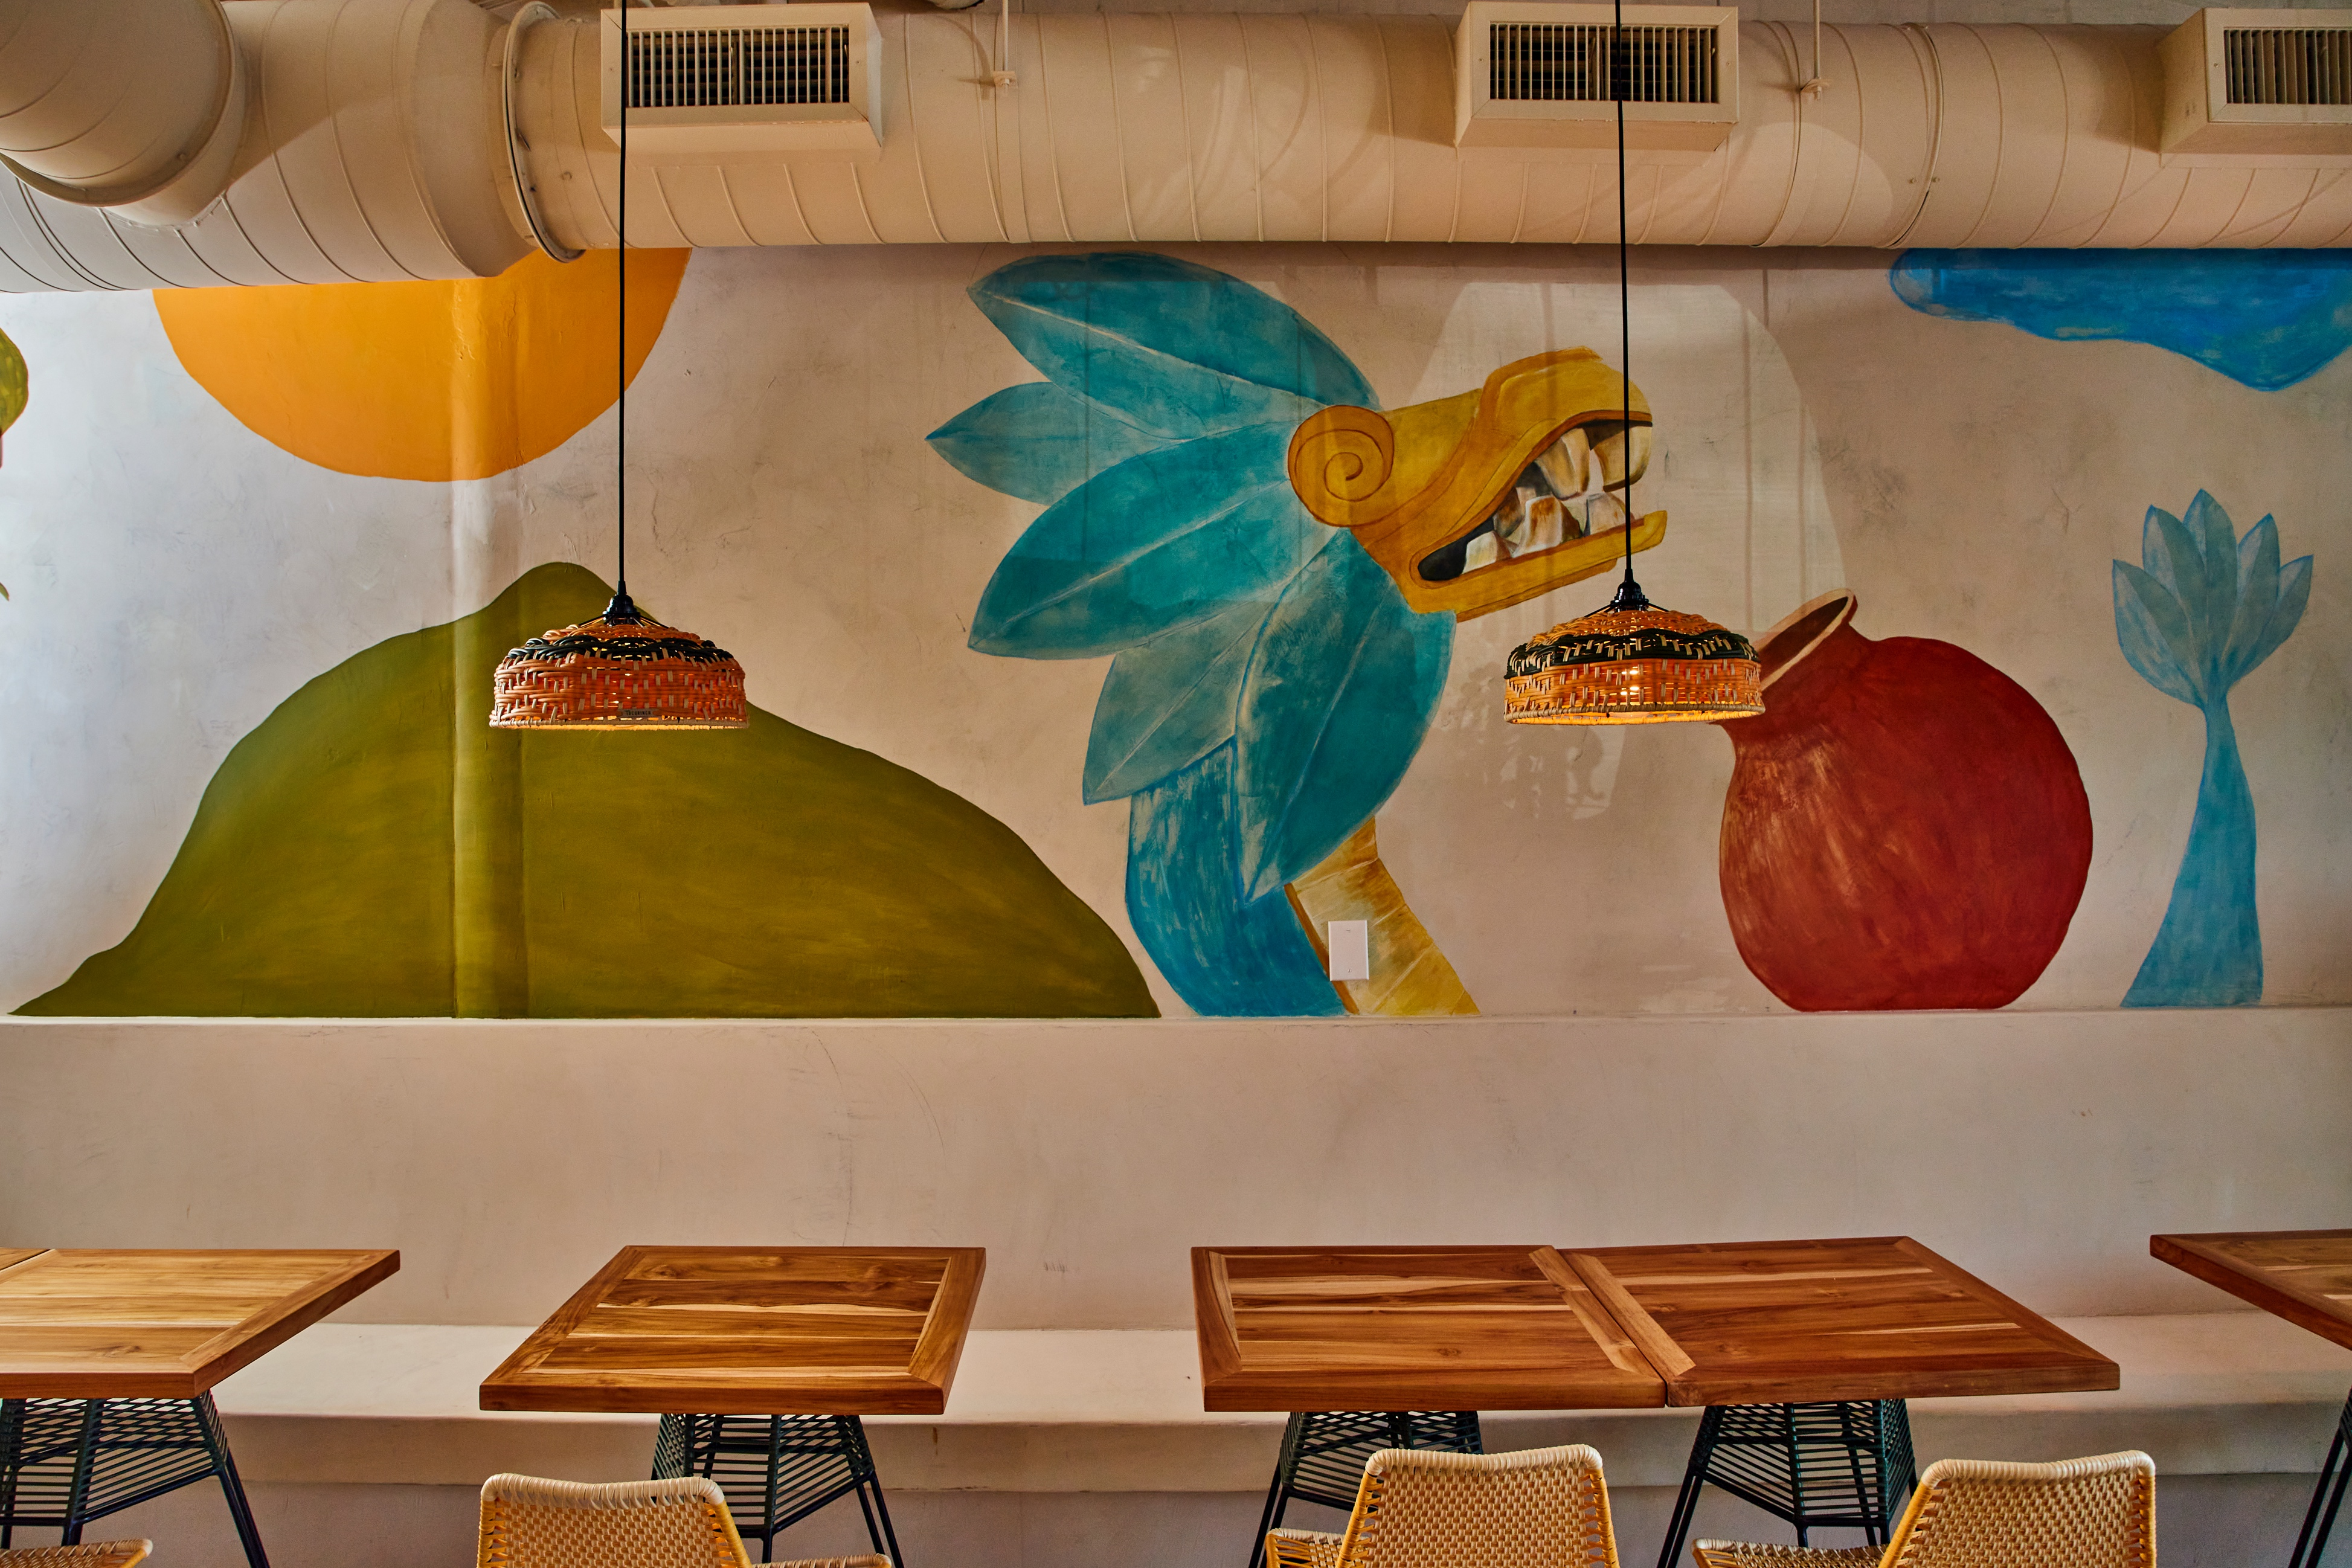 dining room with bright color mural and chairs in the foreground